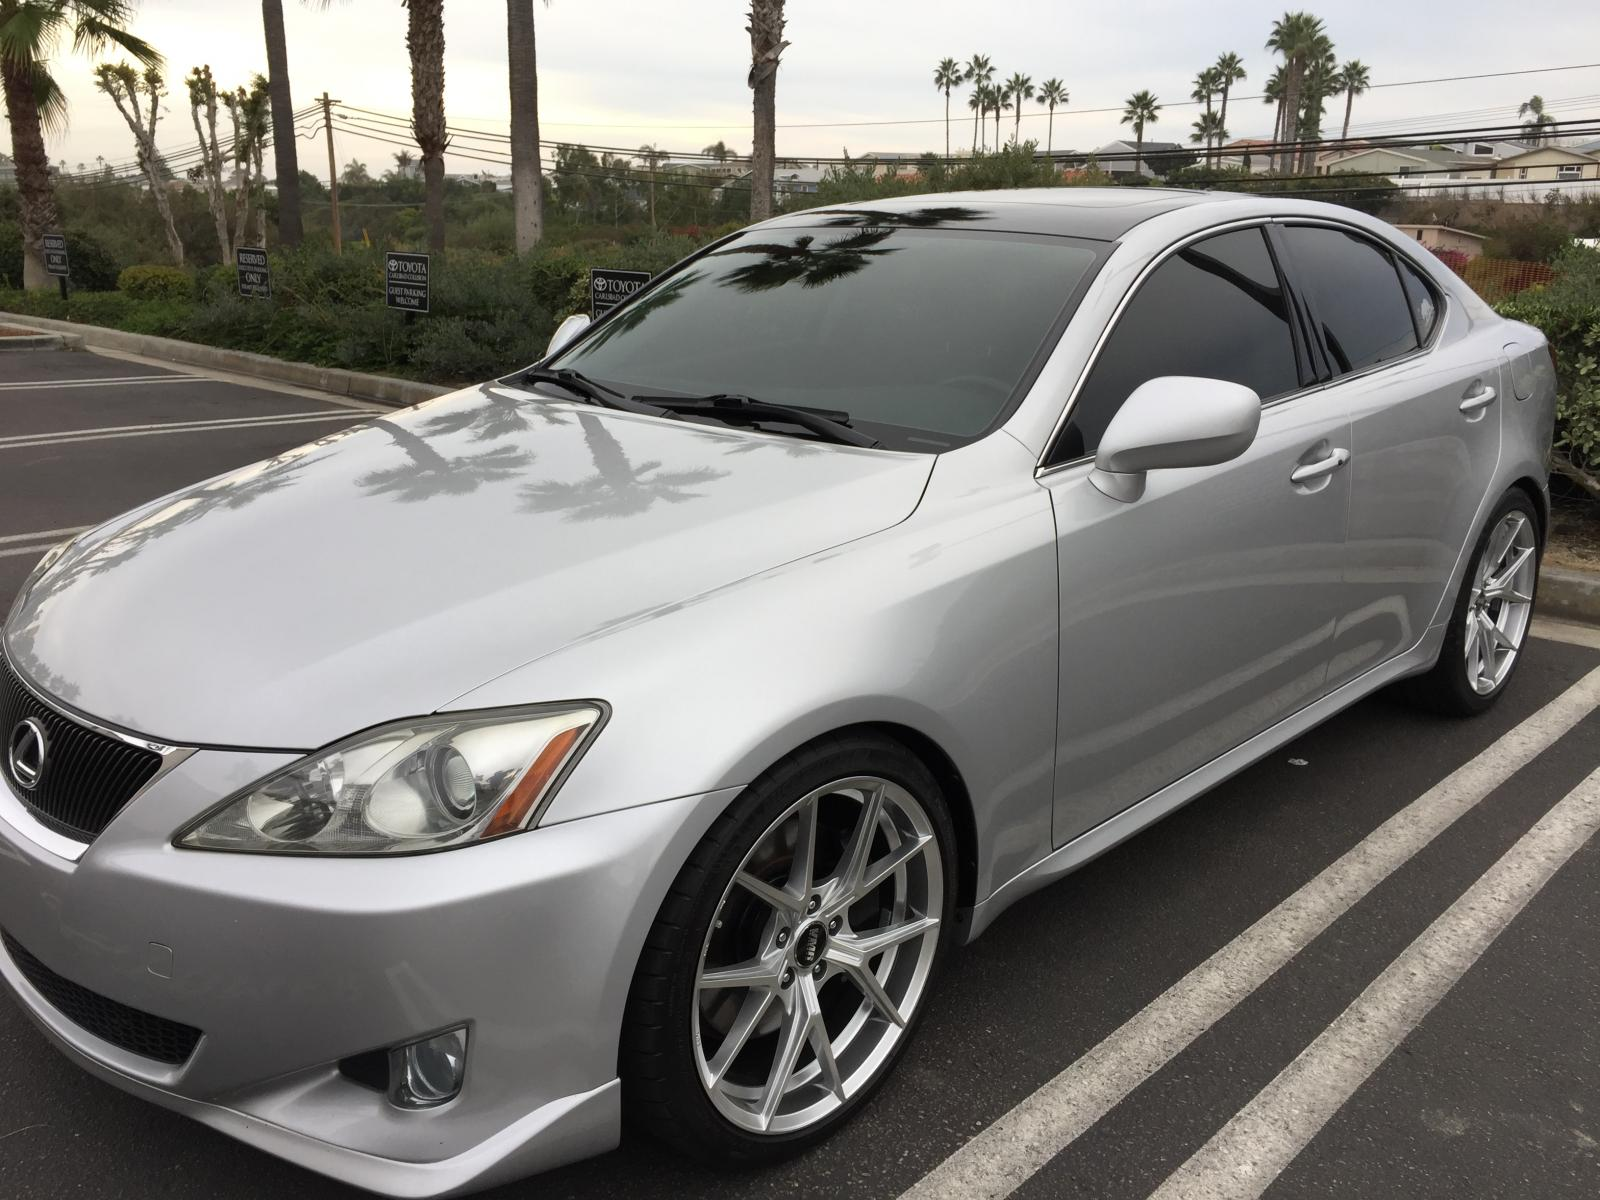 "VMR 804 Staggered 19"" Wheels for 2007 Lexus IS350"